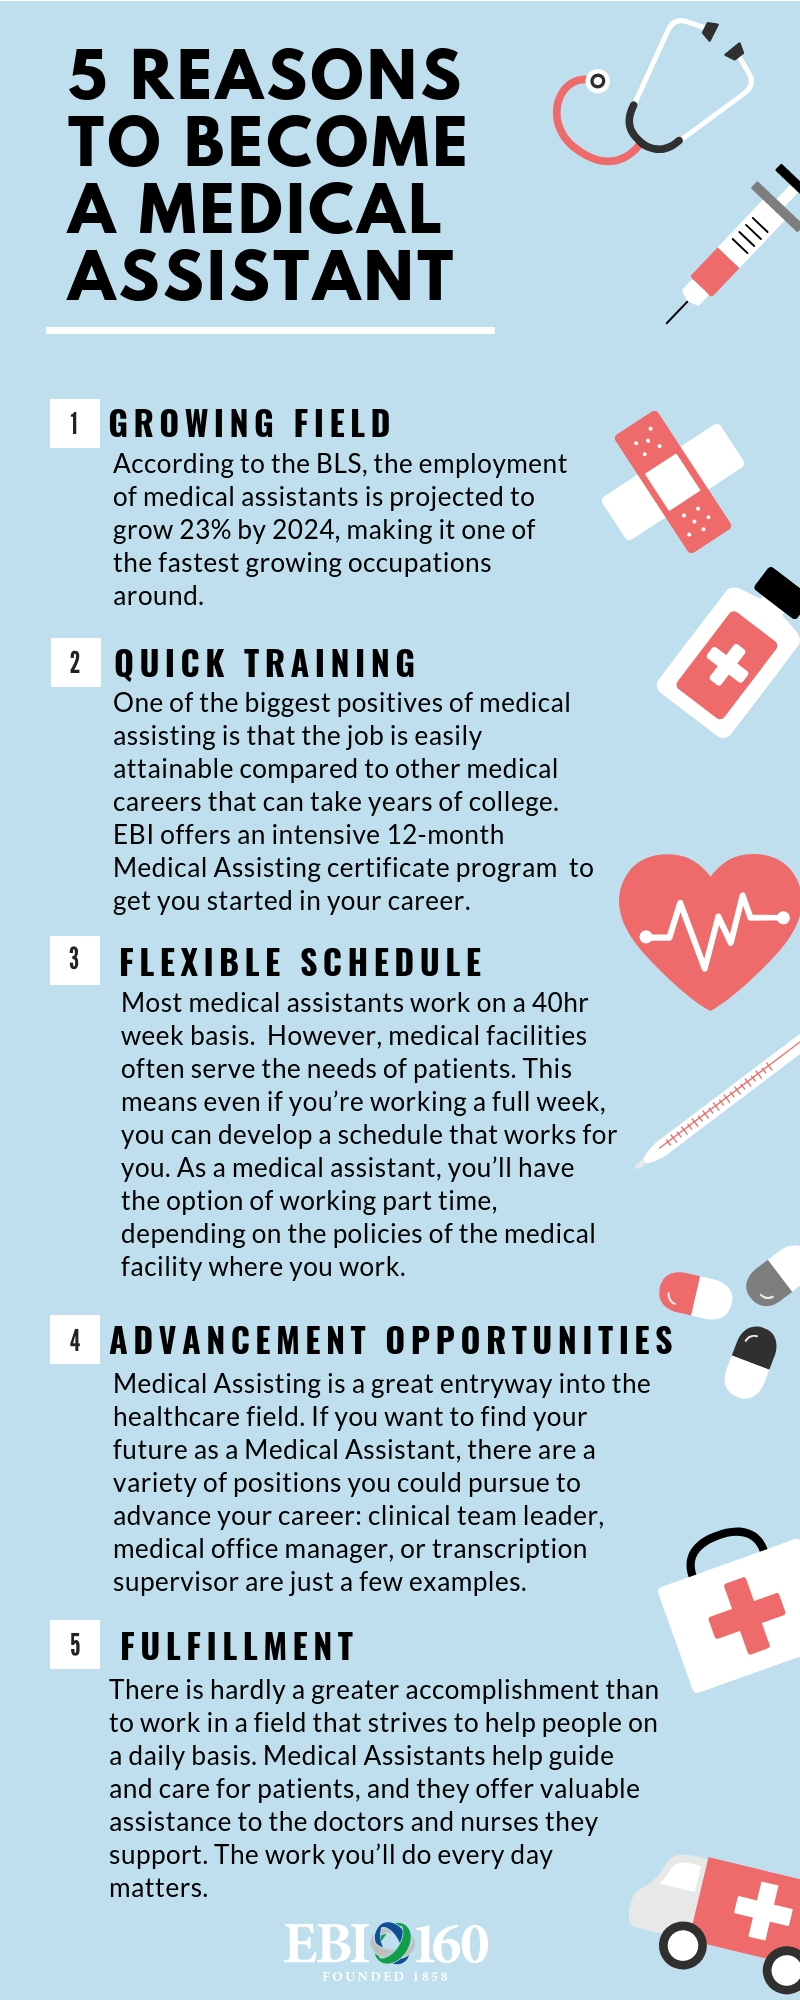 is medical assistant right for me